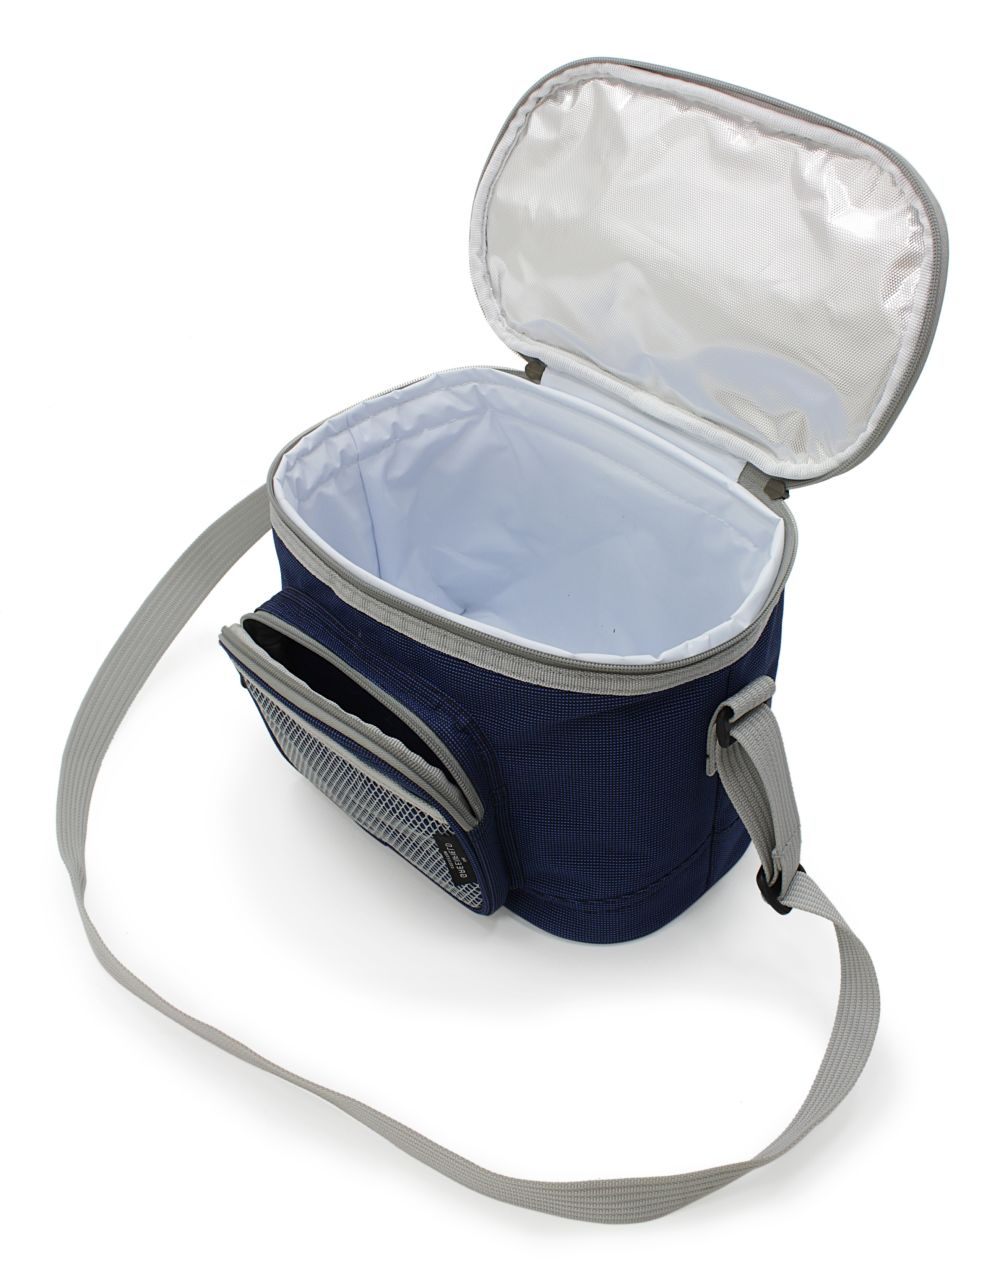 This 15 Litre cool bag with ample space has been designed to accommodate a combination of food, containers and drinks. The bag is fully insulated using our patented IceTech+ technology.